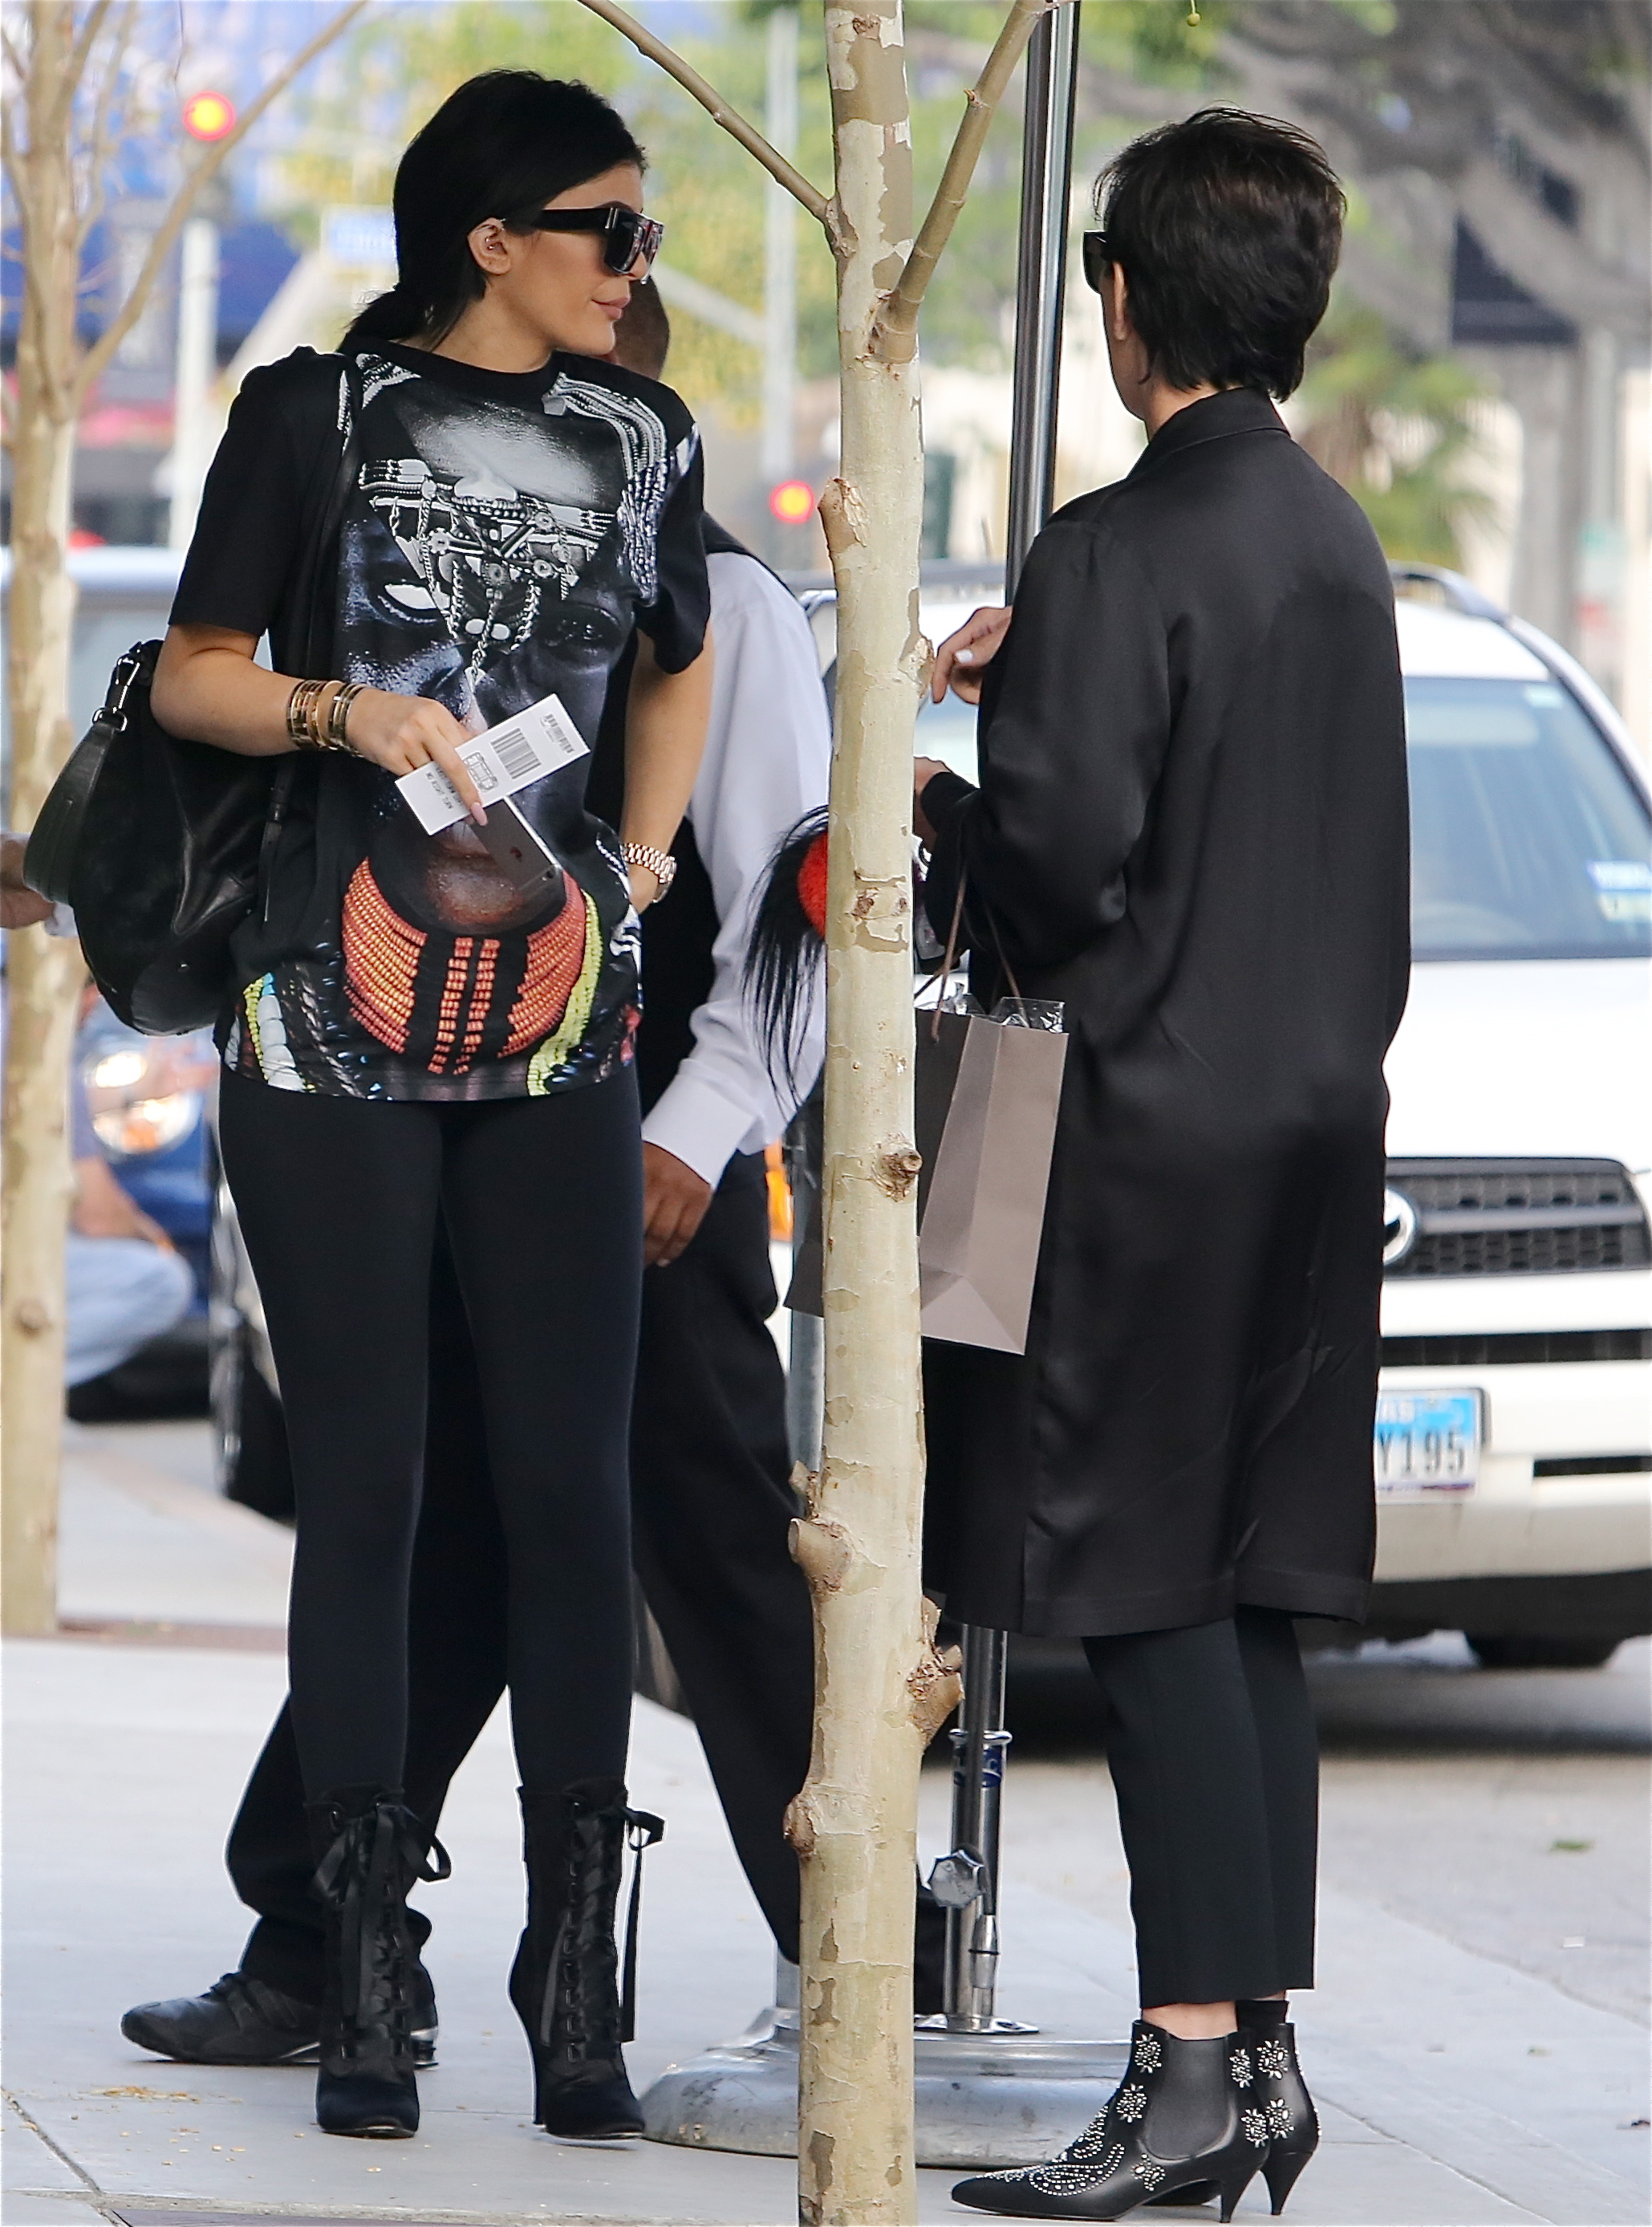 9b81025e09c0 Kylie Jenner in Los Angeles 3 23 15 Elizabeth and James